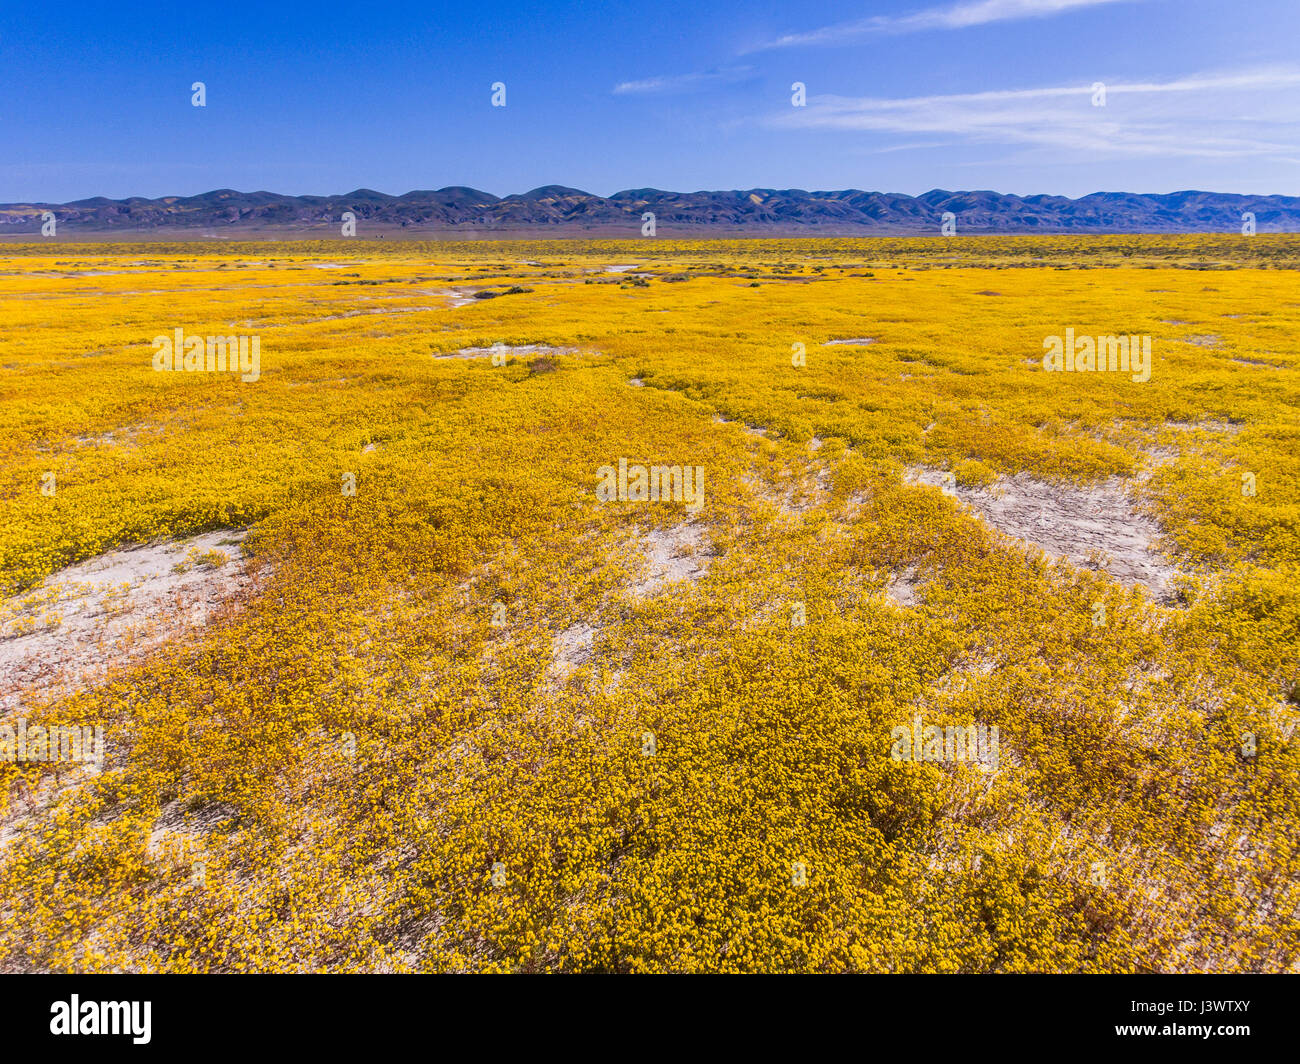 aerial of Soda Lake and goldfields in bloom, Carrizo Plains National Monument, California - Stock Image